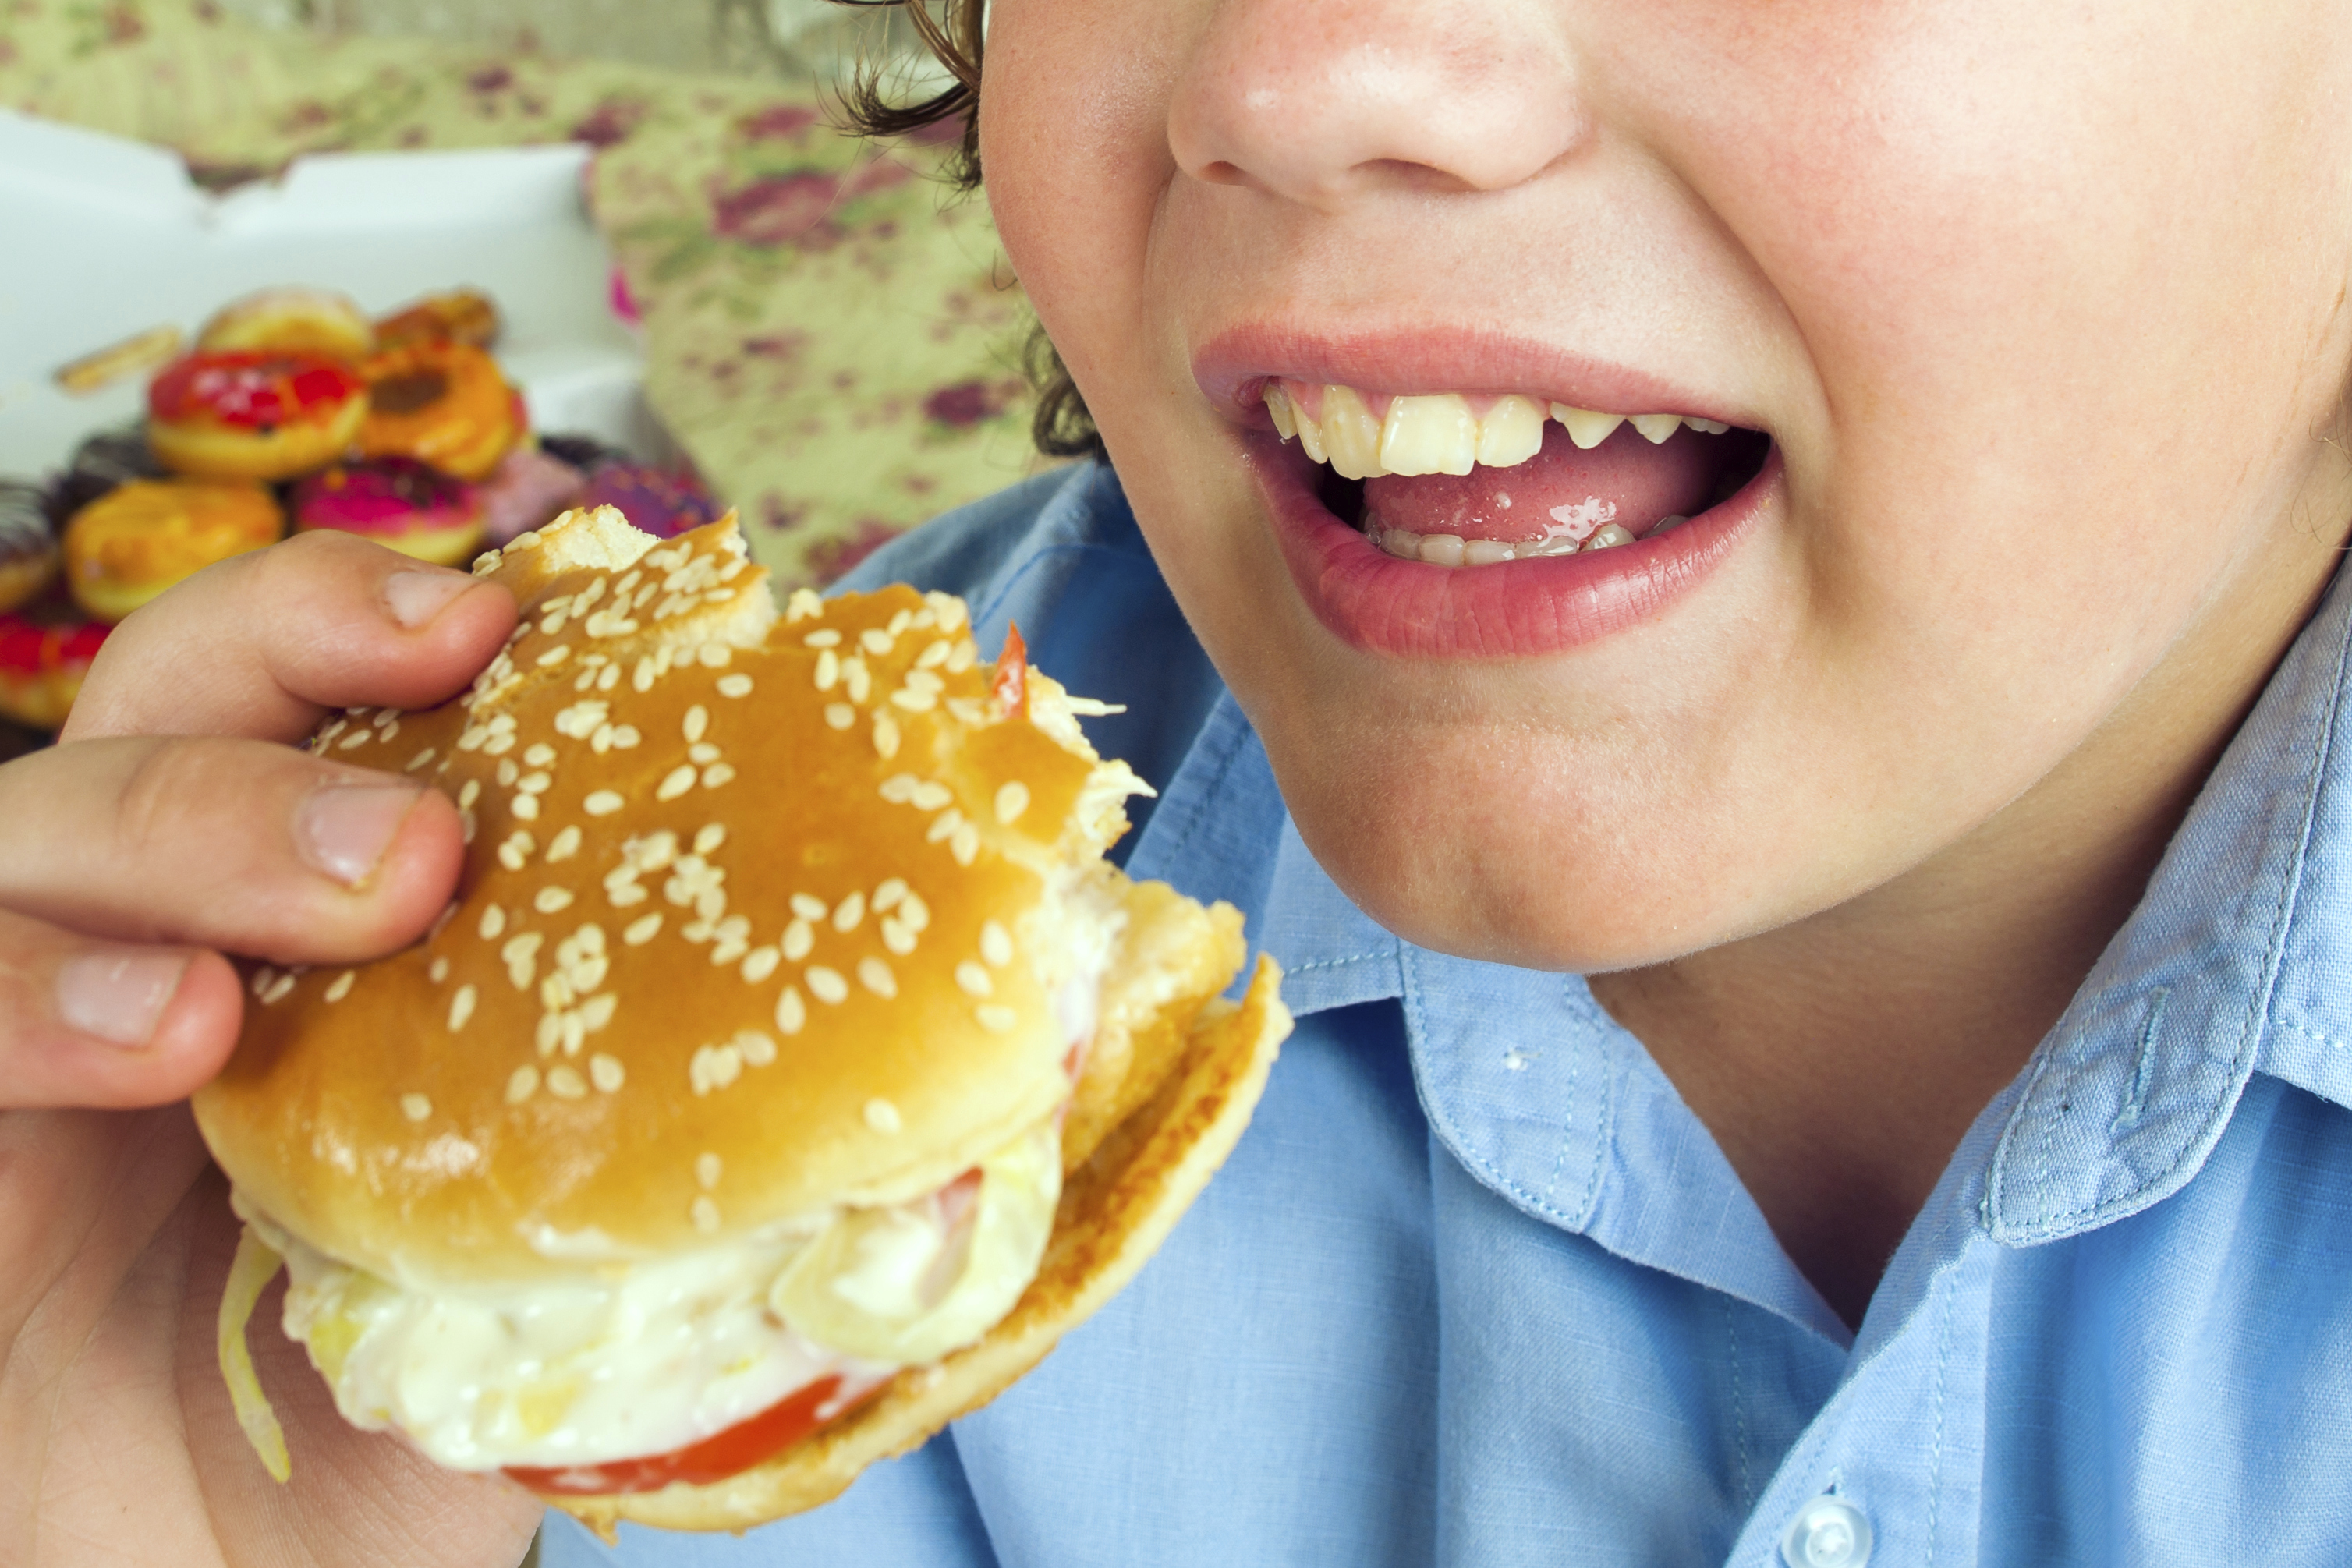 England's poor children are more likely to be obese (Picture: Getty)